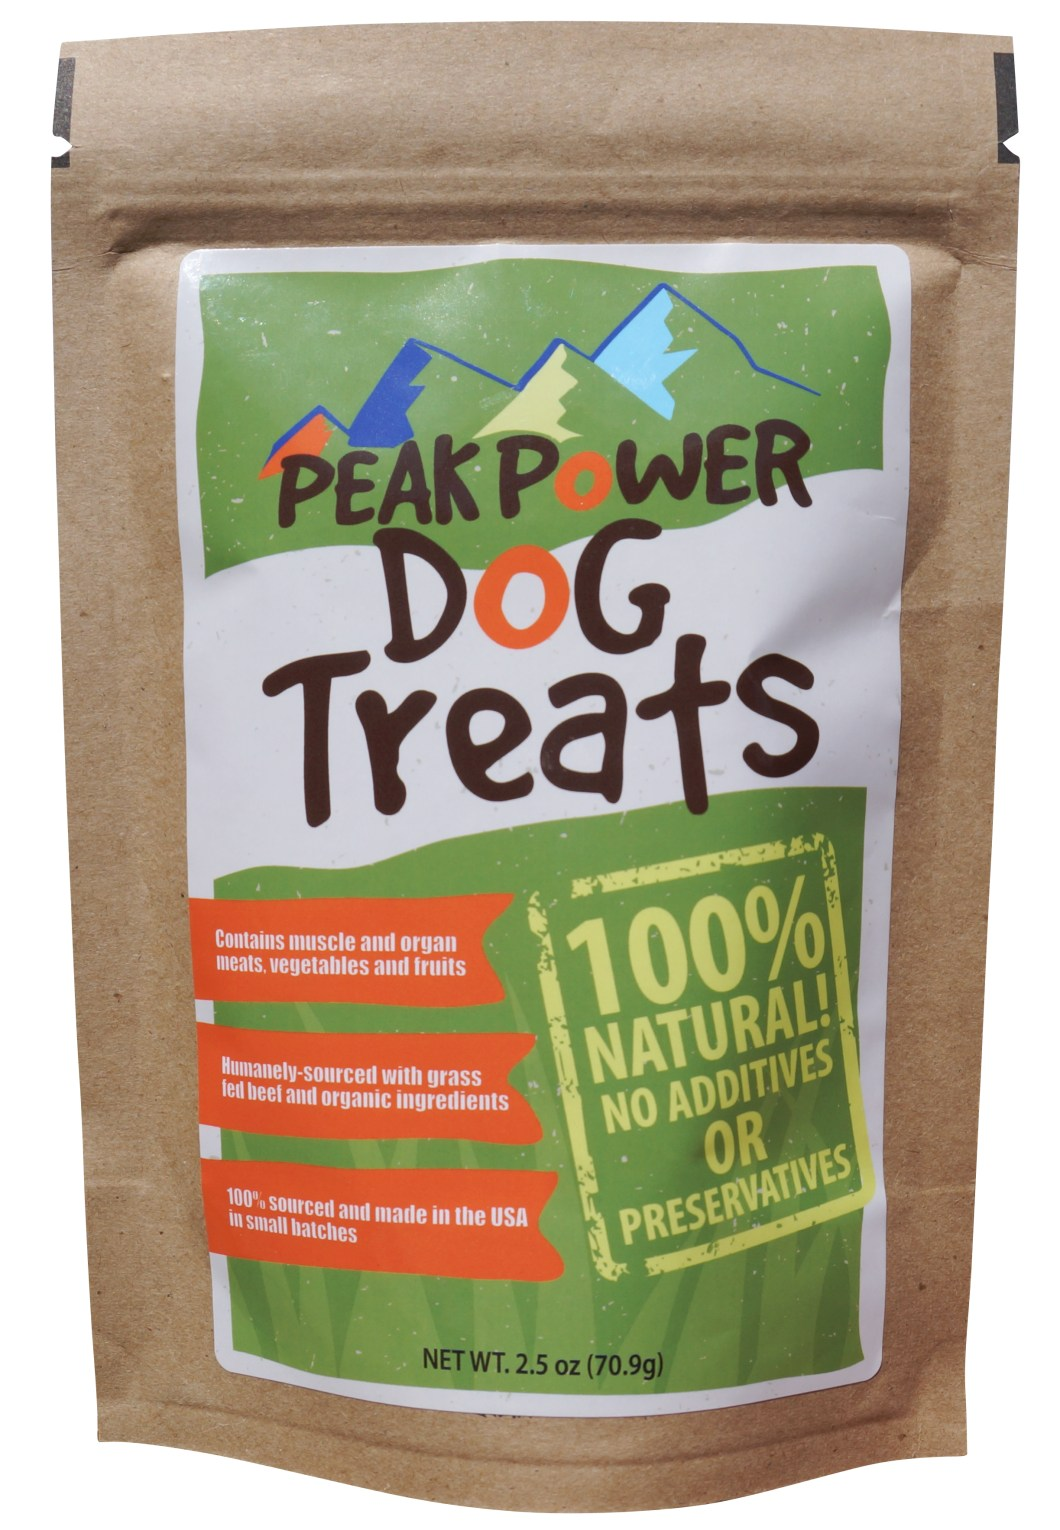 Peak Power Dog Treats